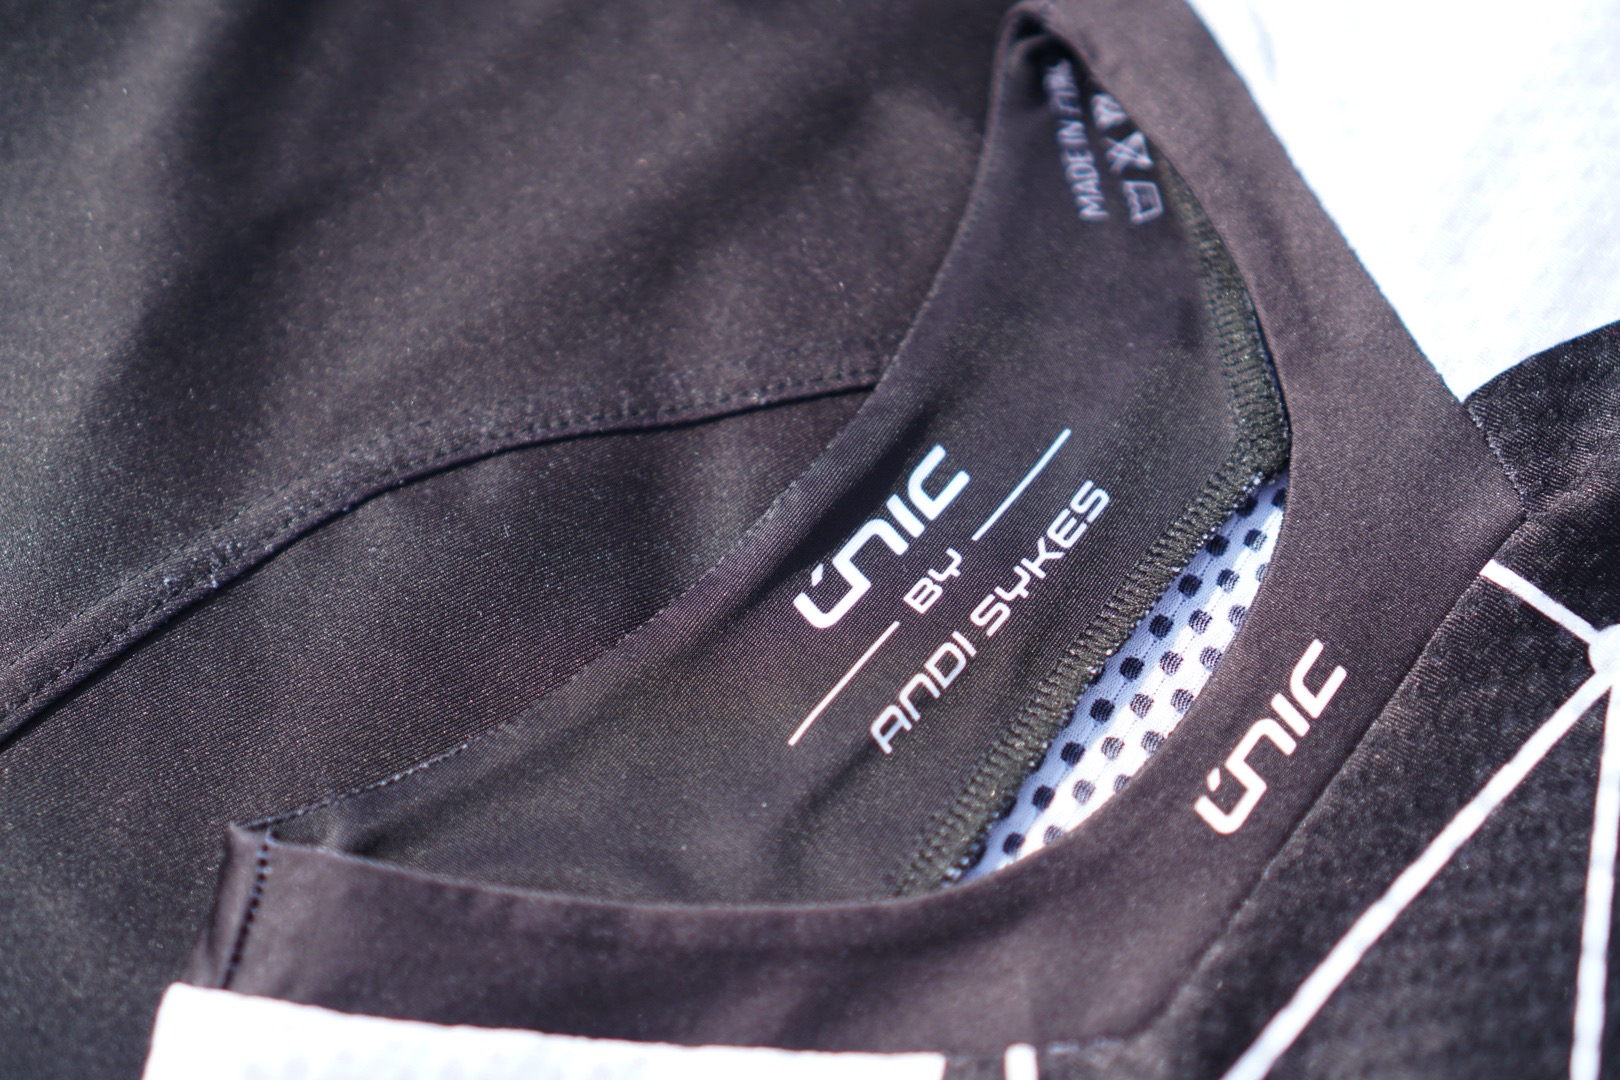 unic clothing review